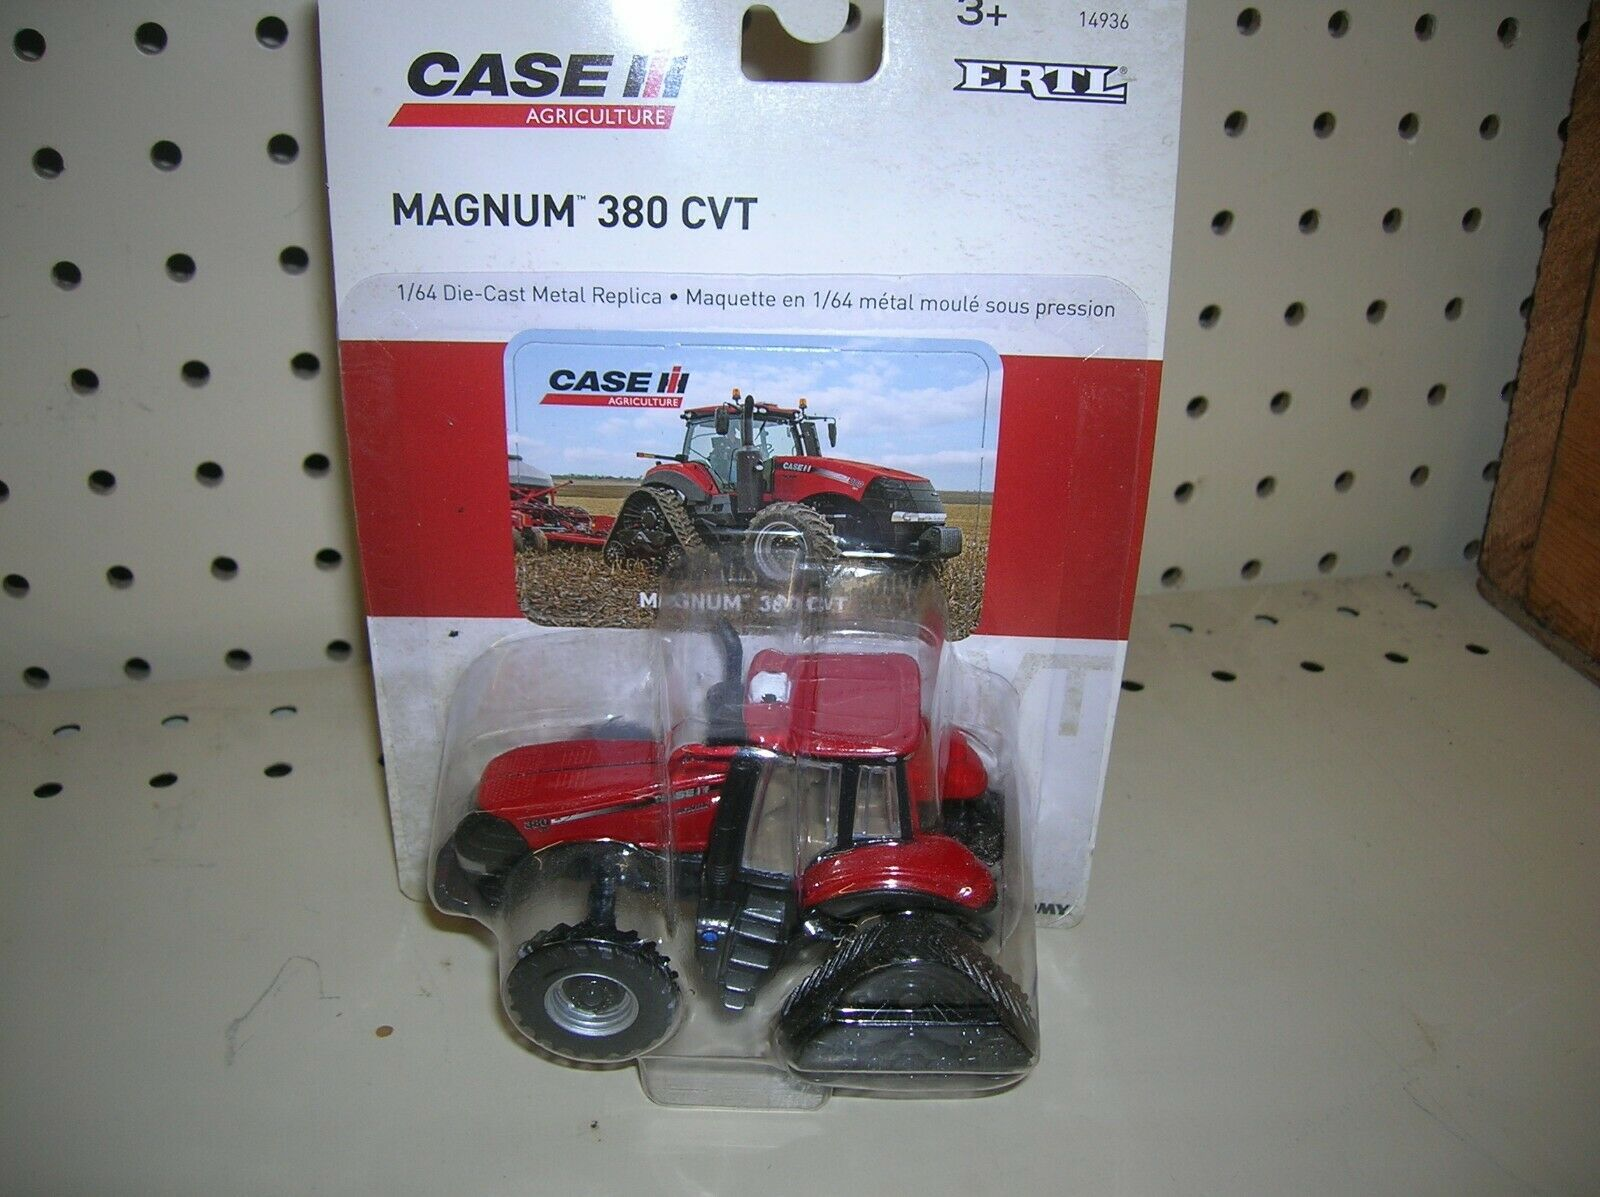 1/64 Scale Case IH Magnum 380 Rowtrac Tractor 14936